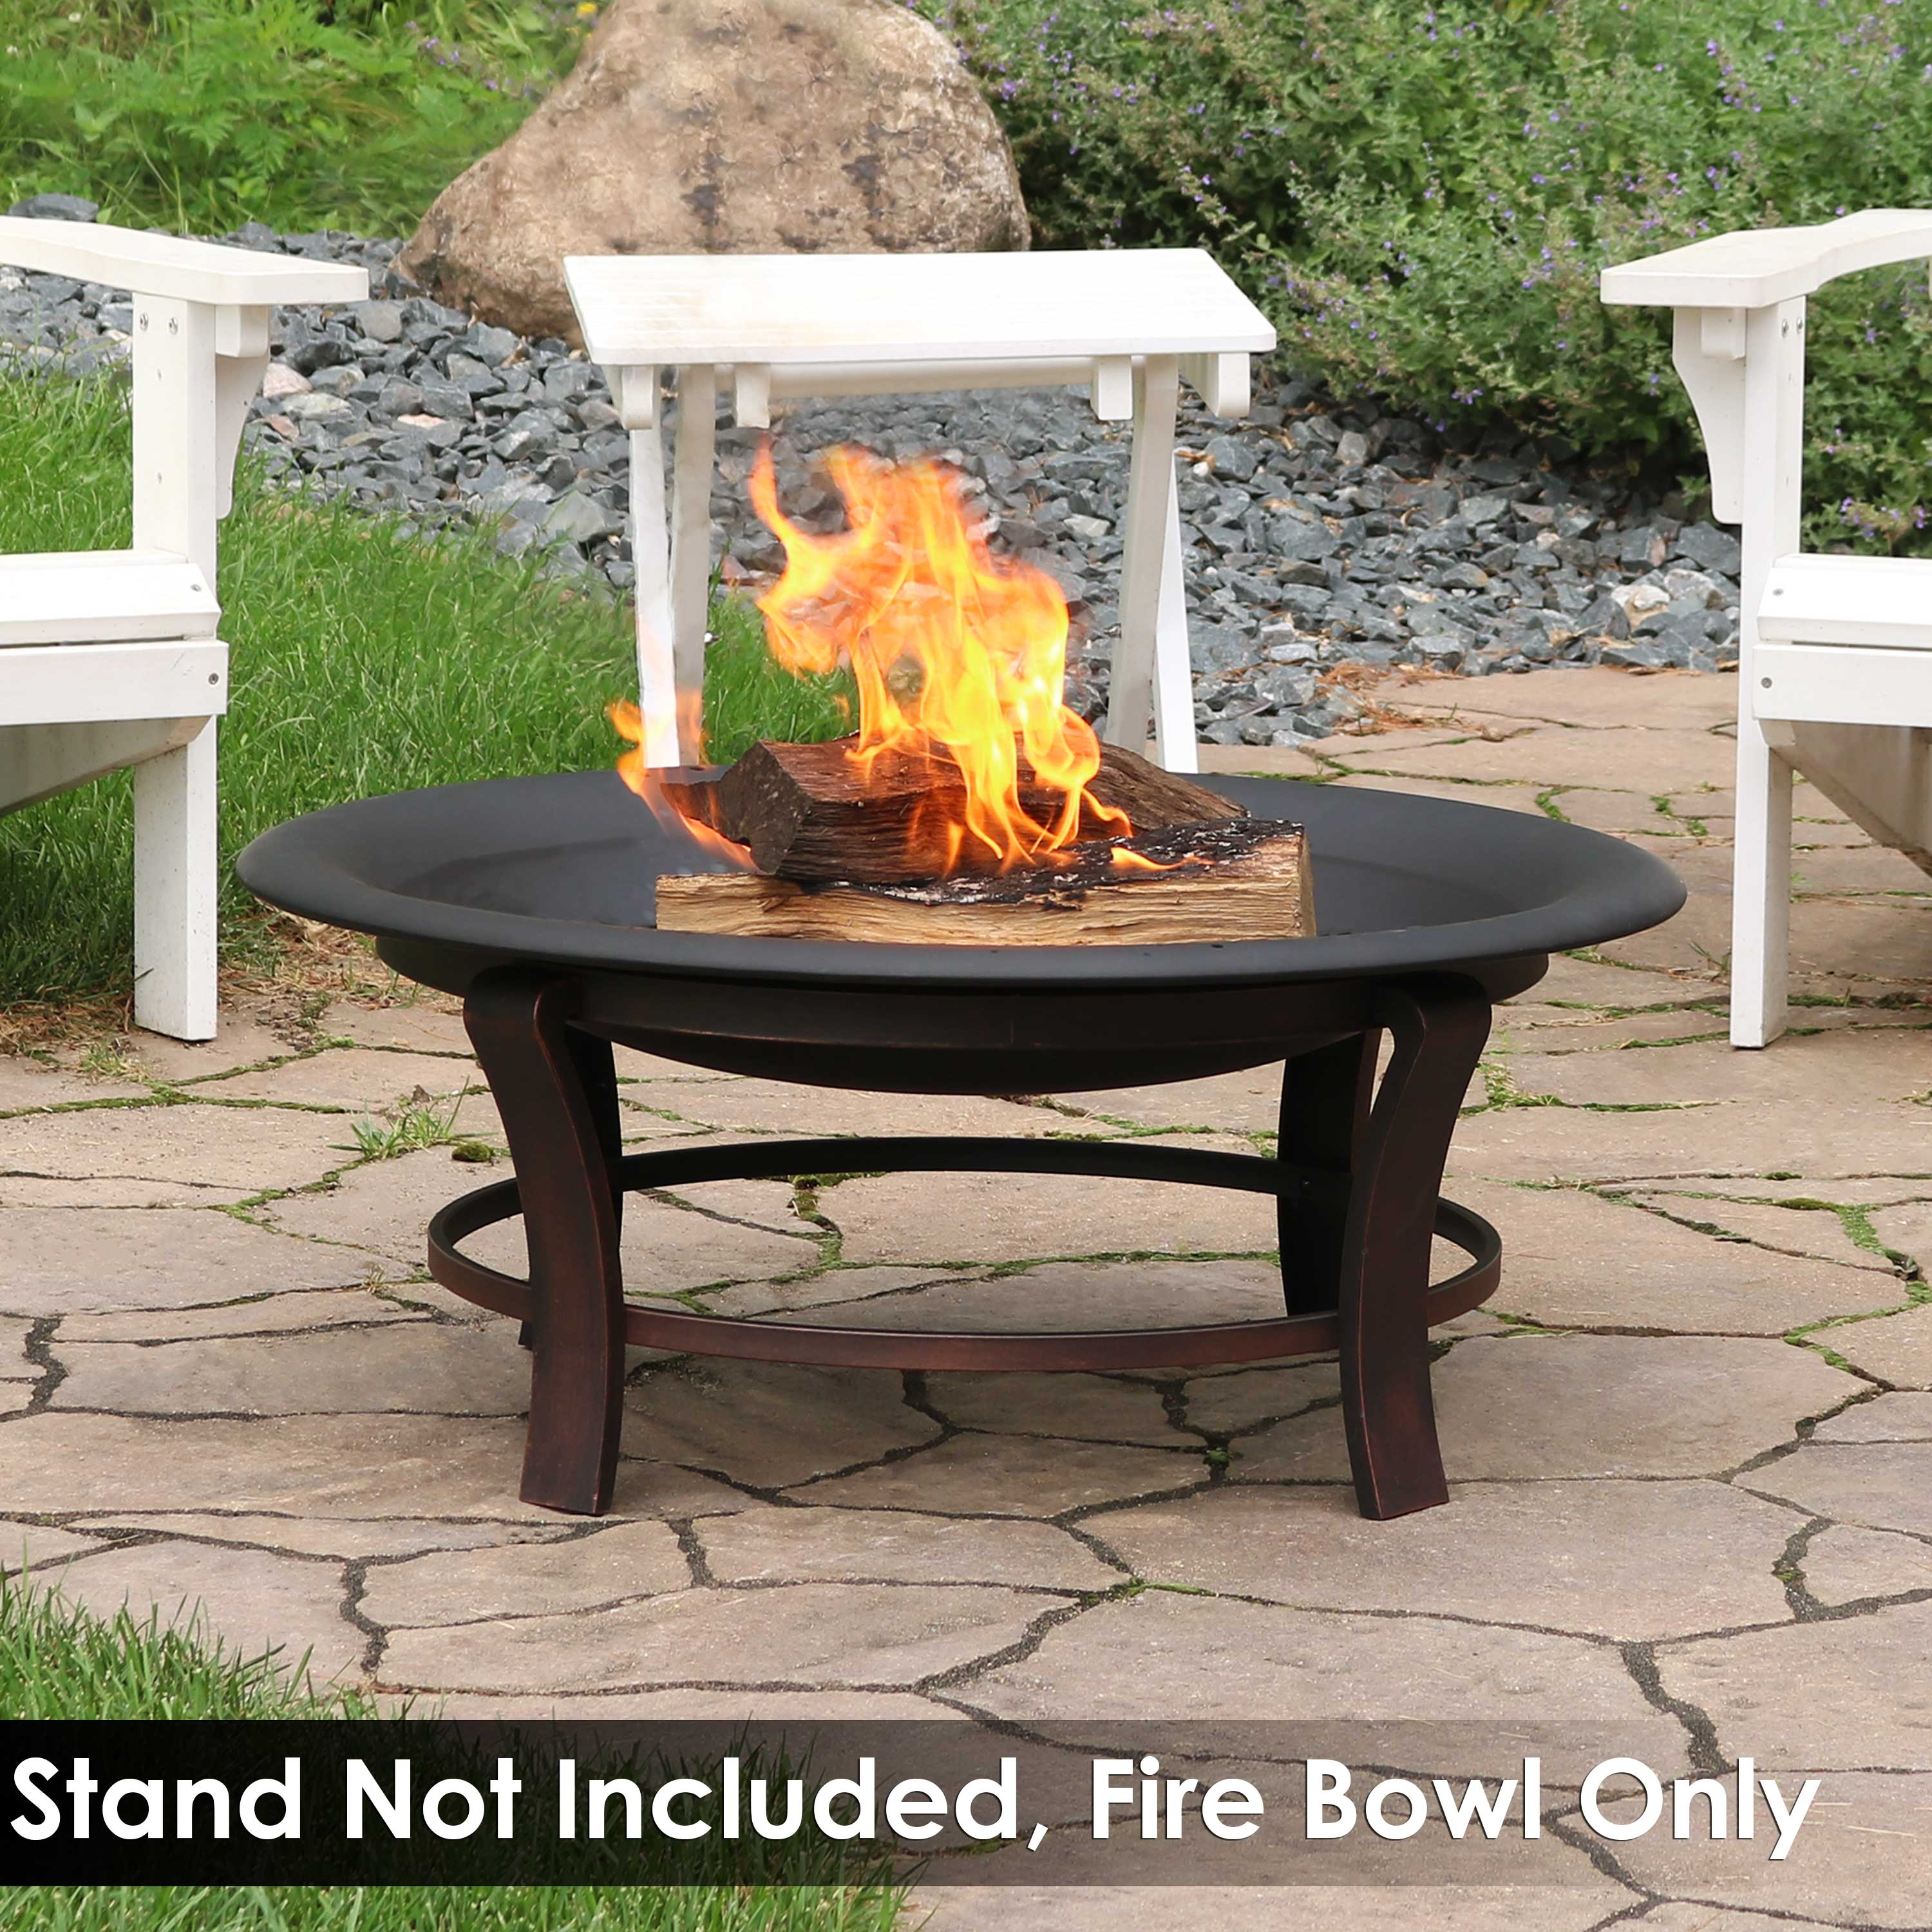 Sunnydaze Outdoor Replacement Fire Bowl For Diy Or Existing Fire Pits Steel With High Temperature Paint Finish Round Wood Burning Pit